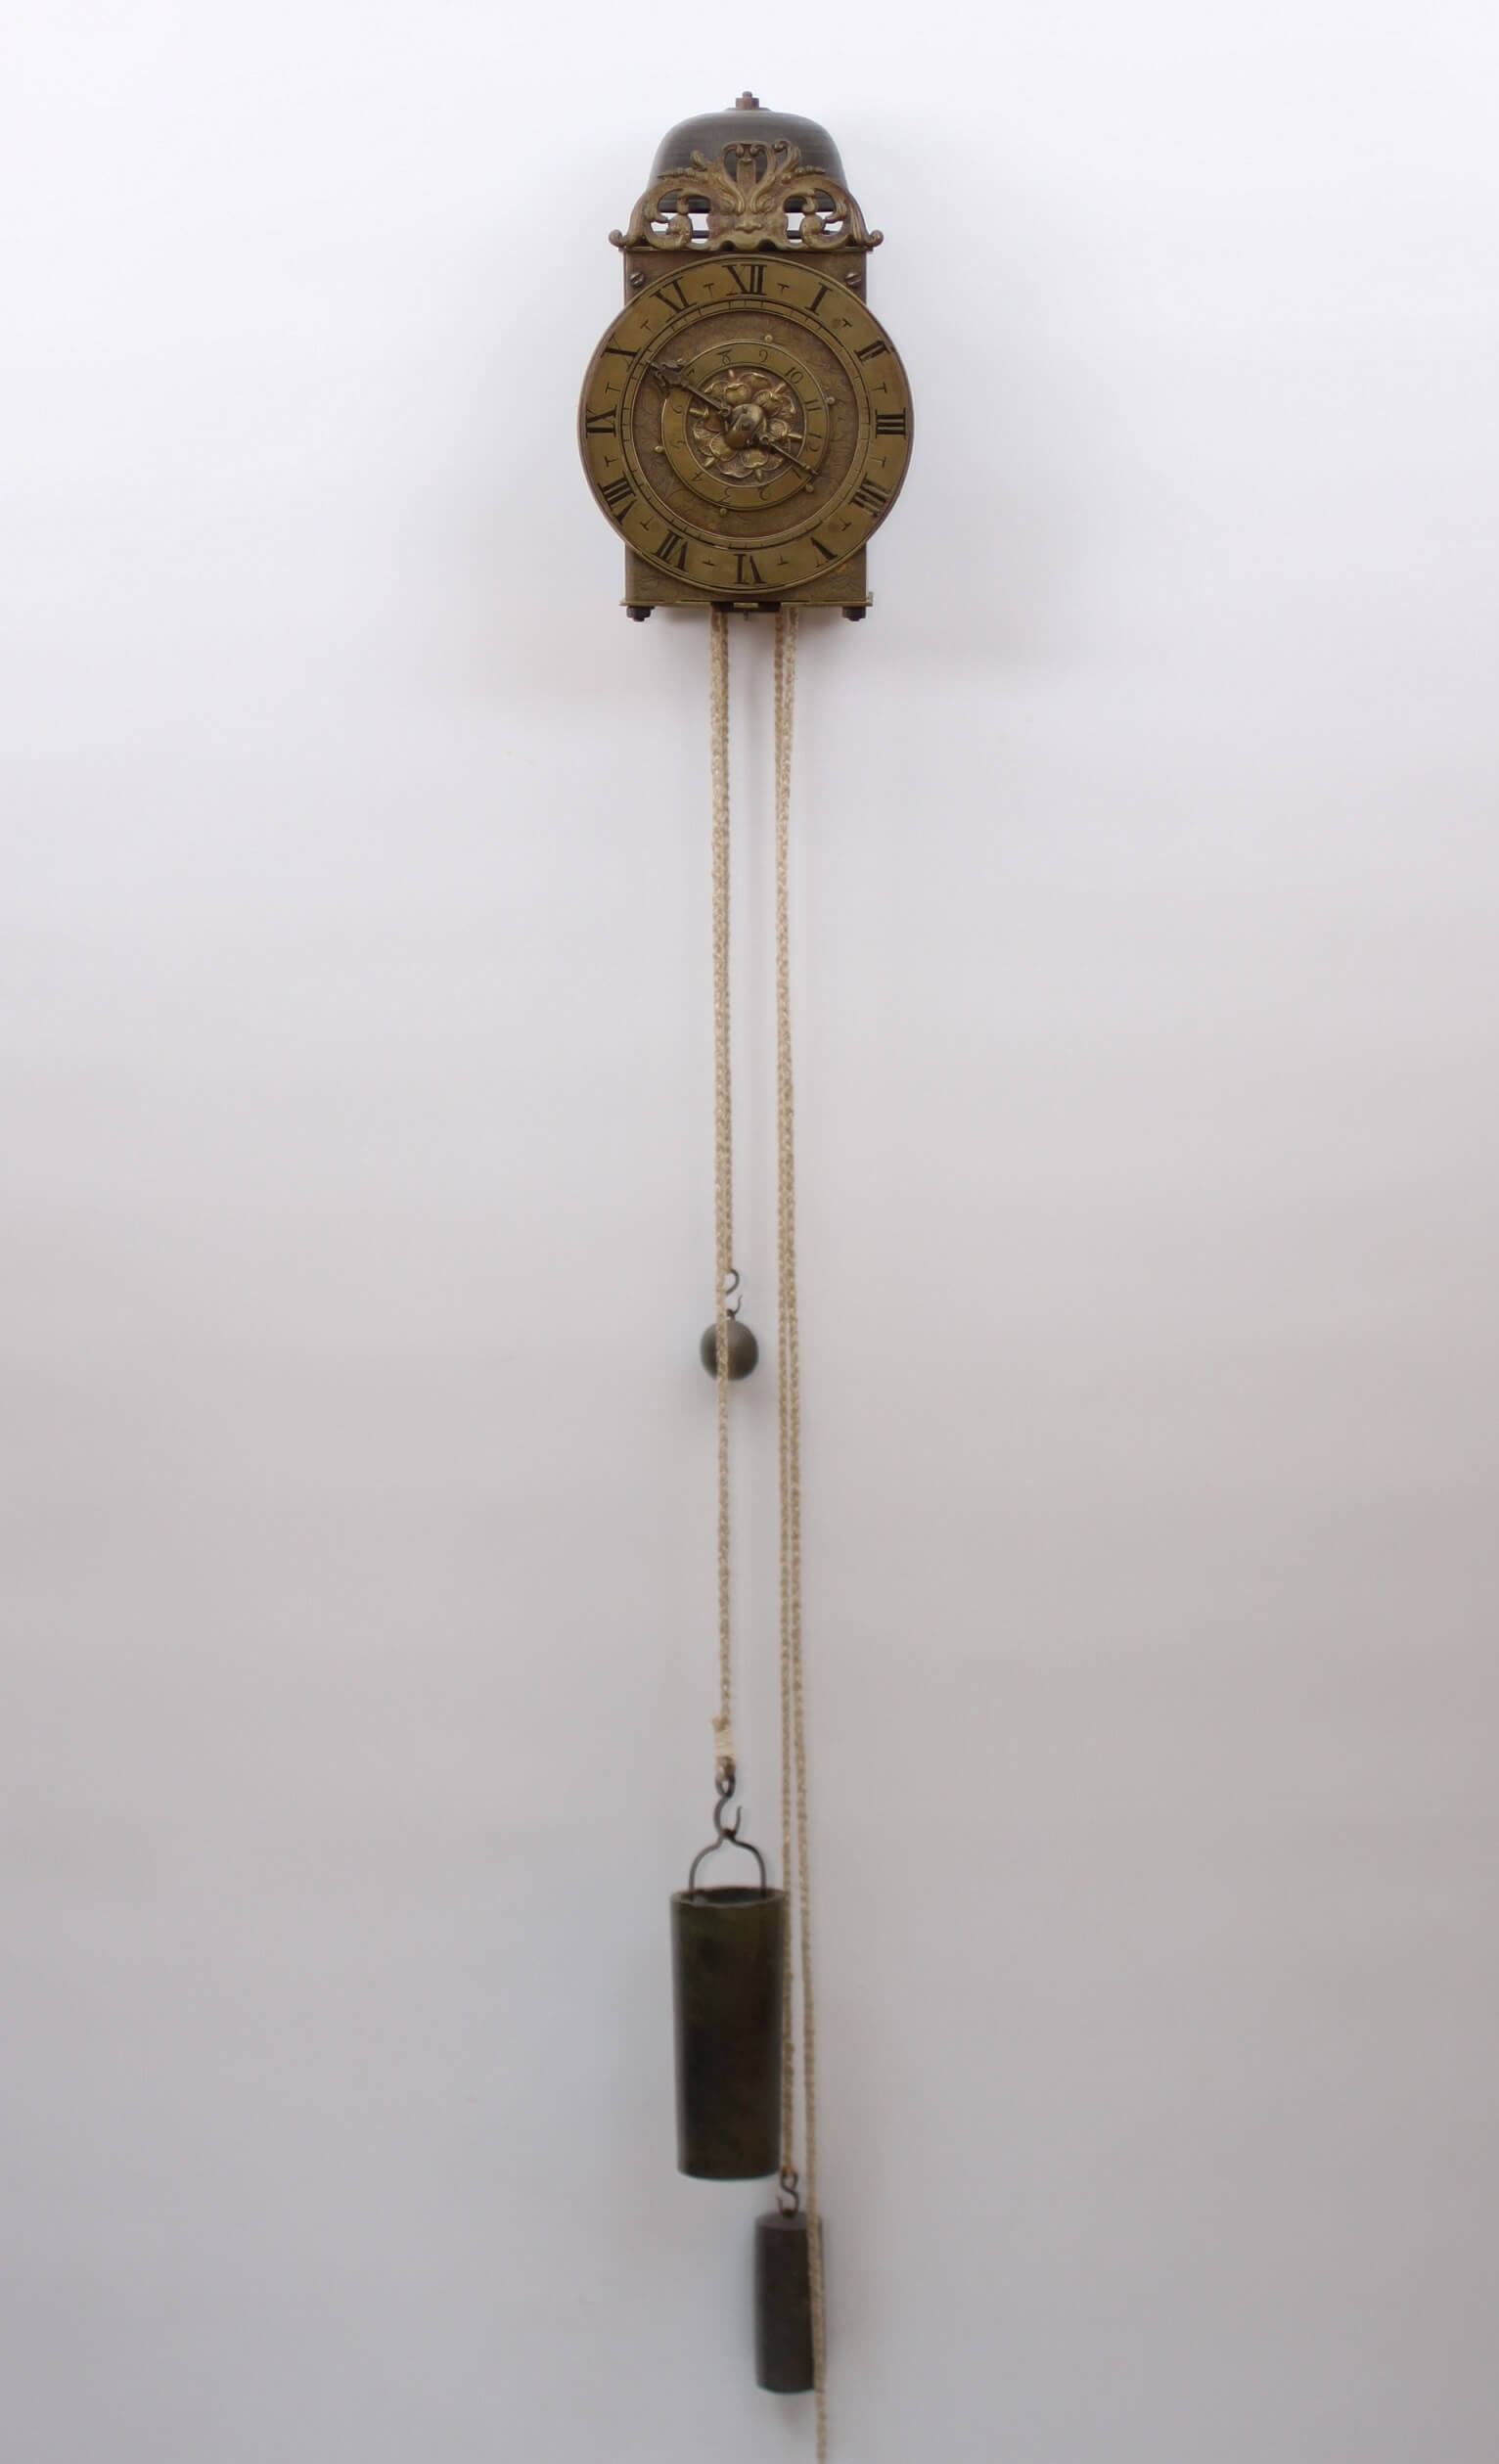 French Brass Lantern Balance Angers Suedois 1650